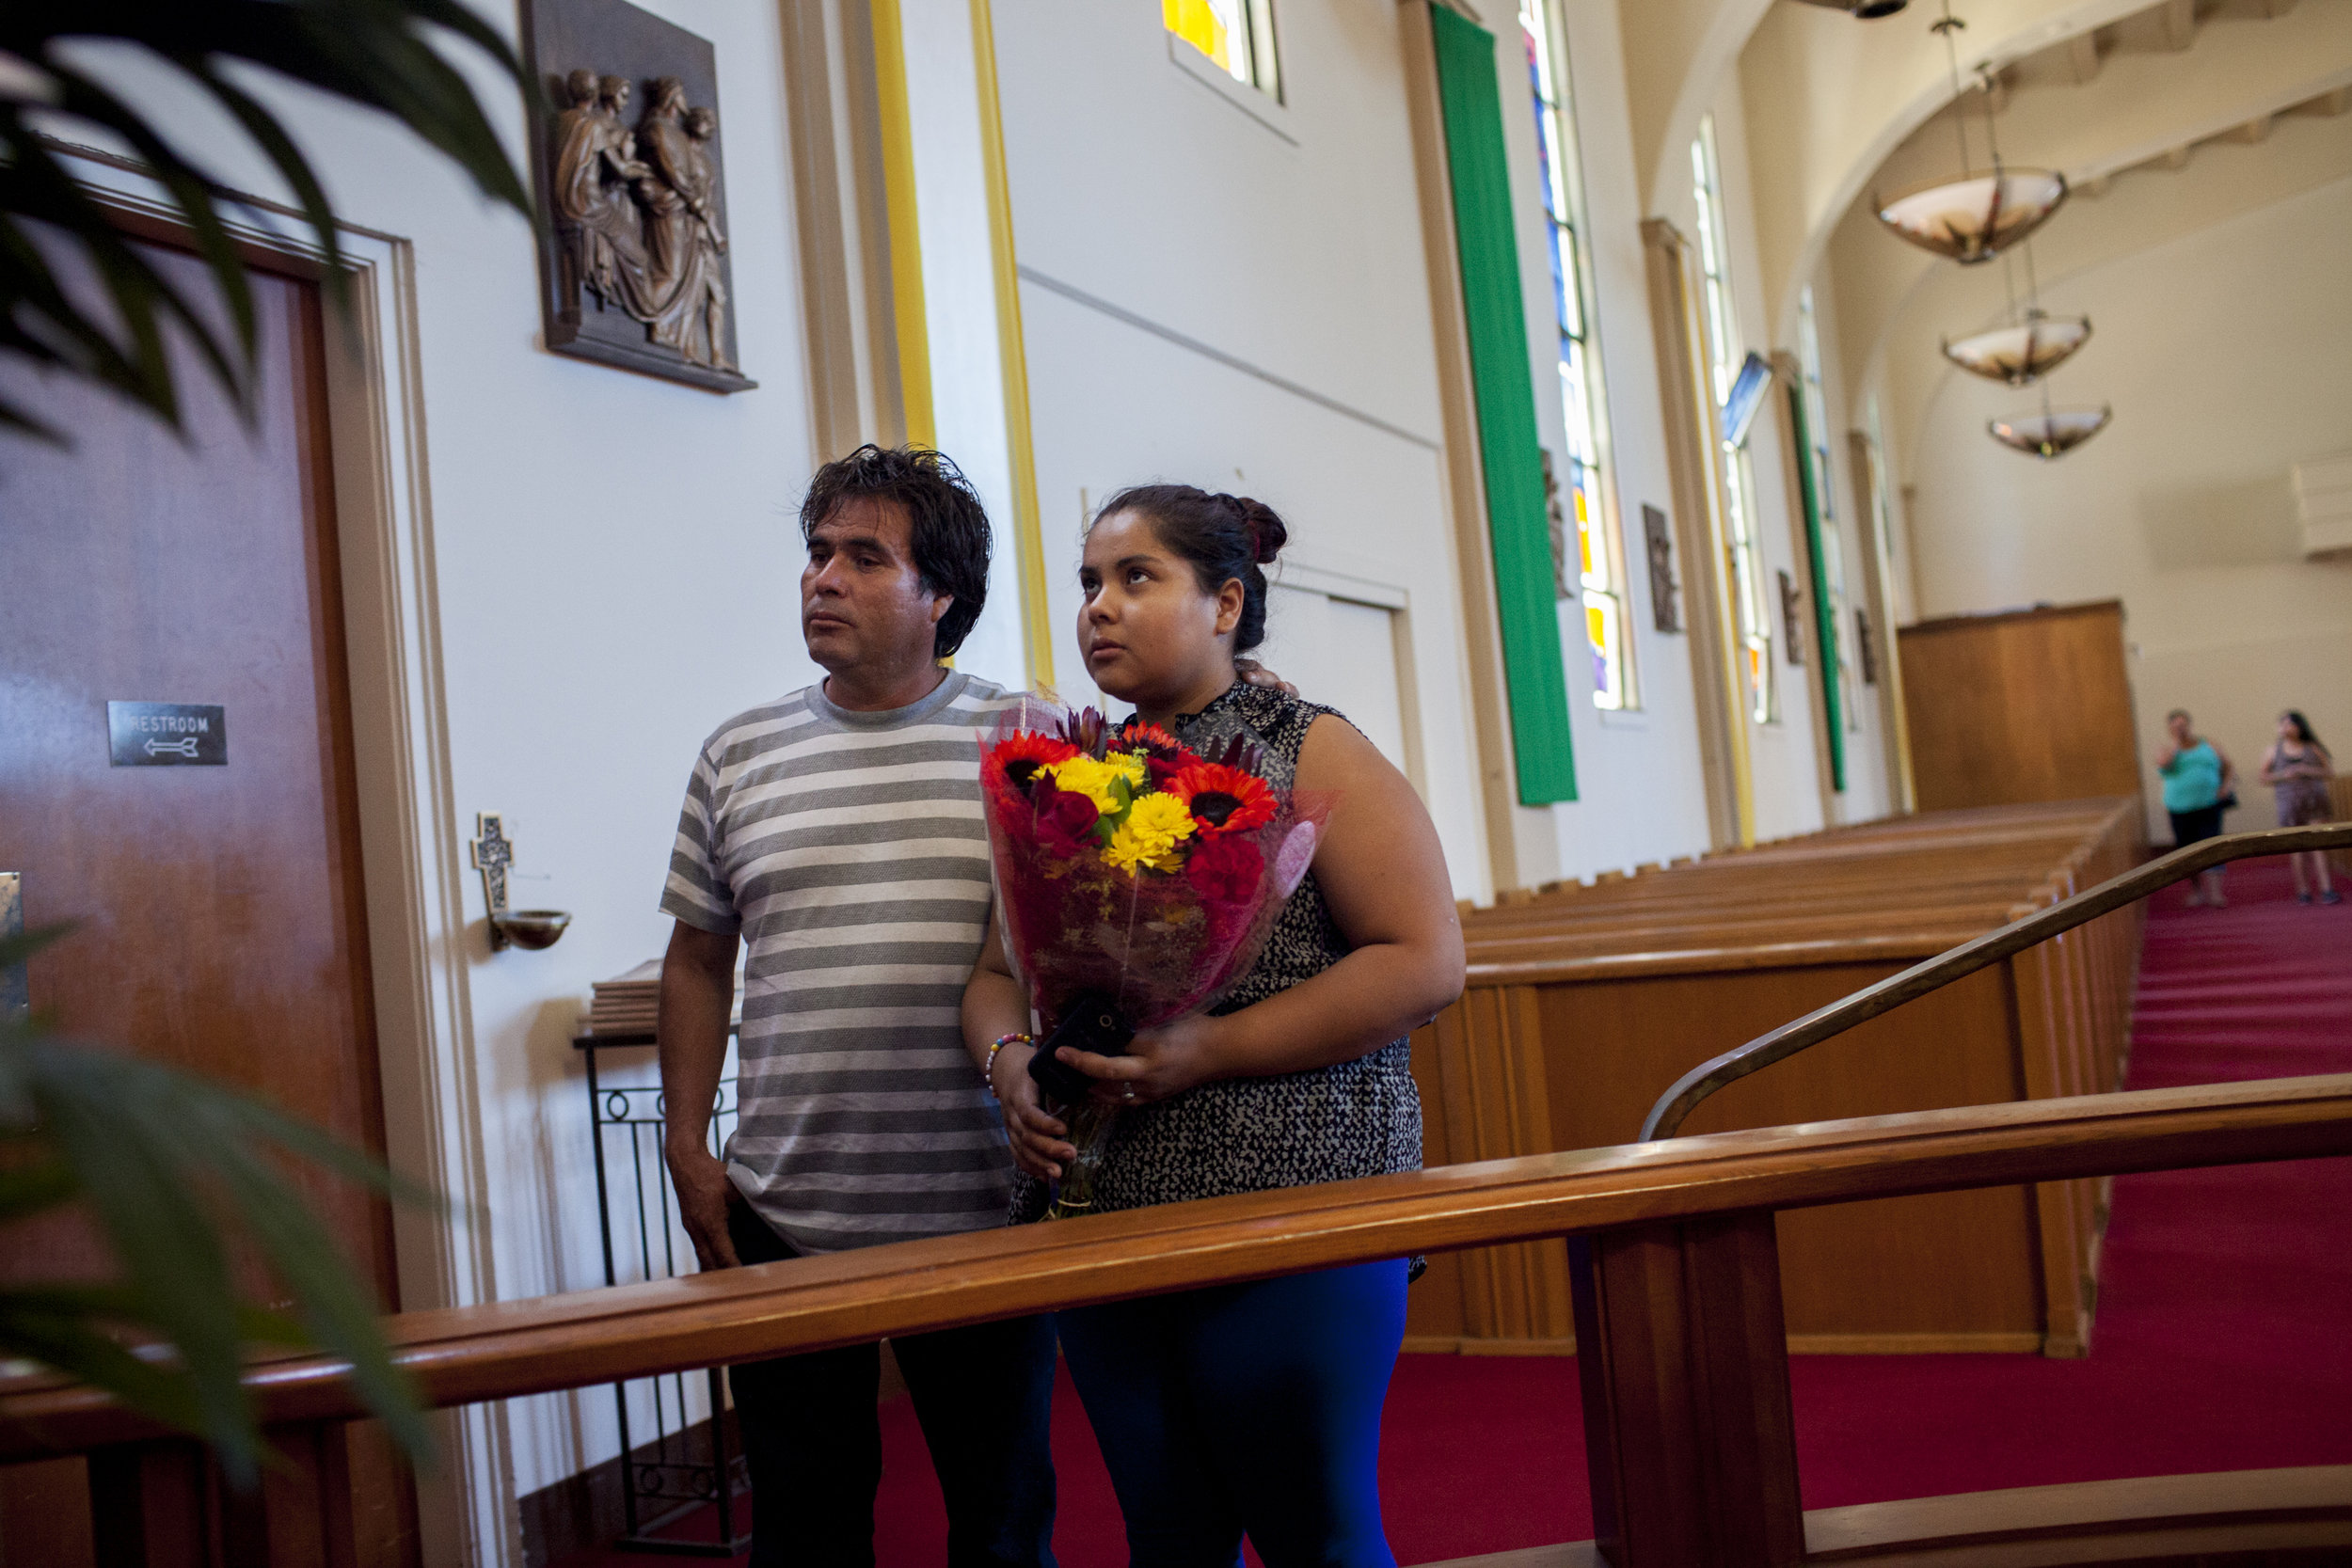 Blanca and her father Eduardo pay tribute to the Virgin of Guadalupe at the start of her second semester of UC Berkeley in Berkeley, CA at an unspecified church. At the start of each semester she pays tribute by bringing flowers to the Virgin to thank her. Photographed on August 27, 2013.